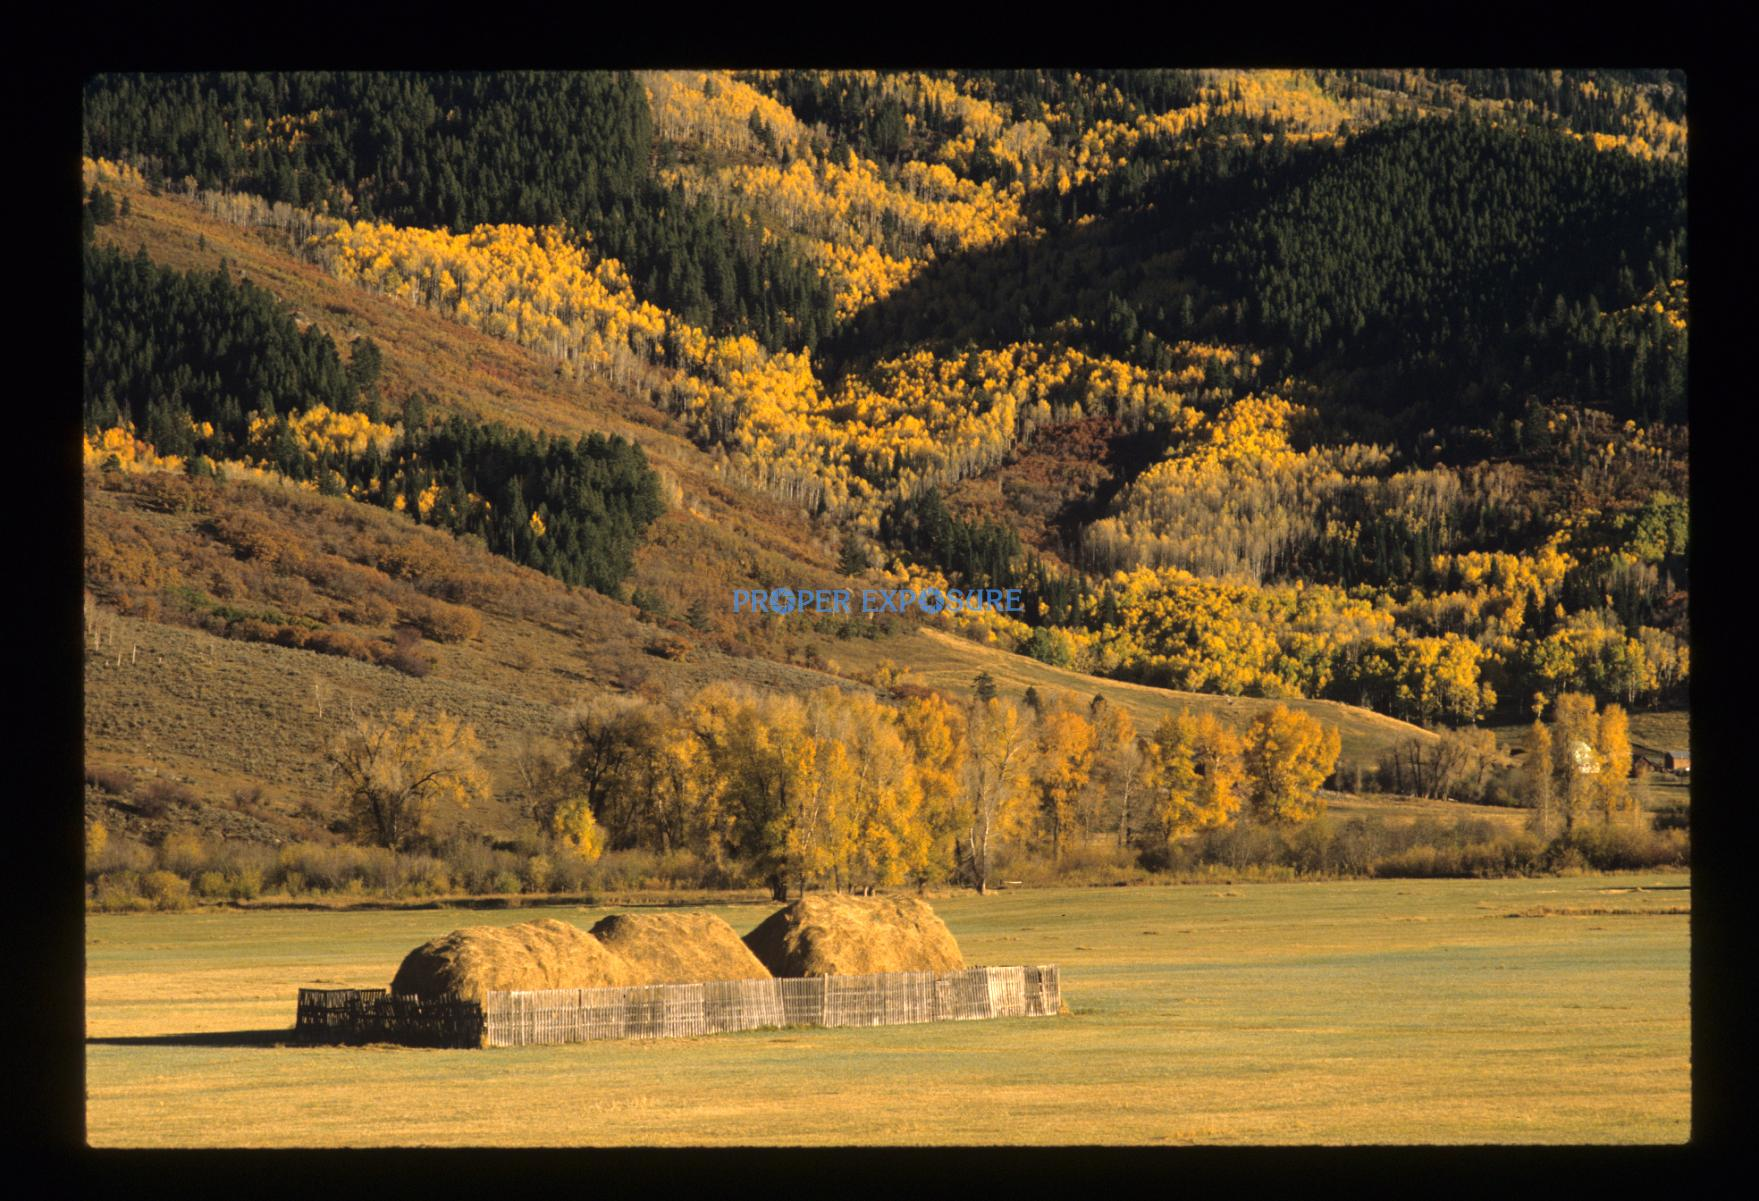 Hay field, Pleasant Valley, Steamboat Springs, Colorado, Rocky  Mountain, Ken Proper, fall colors